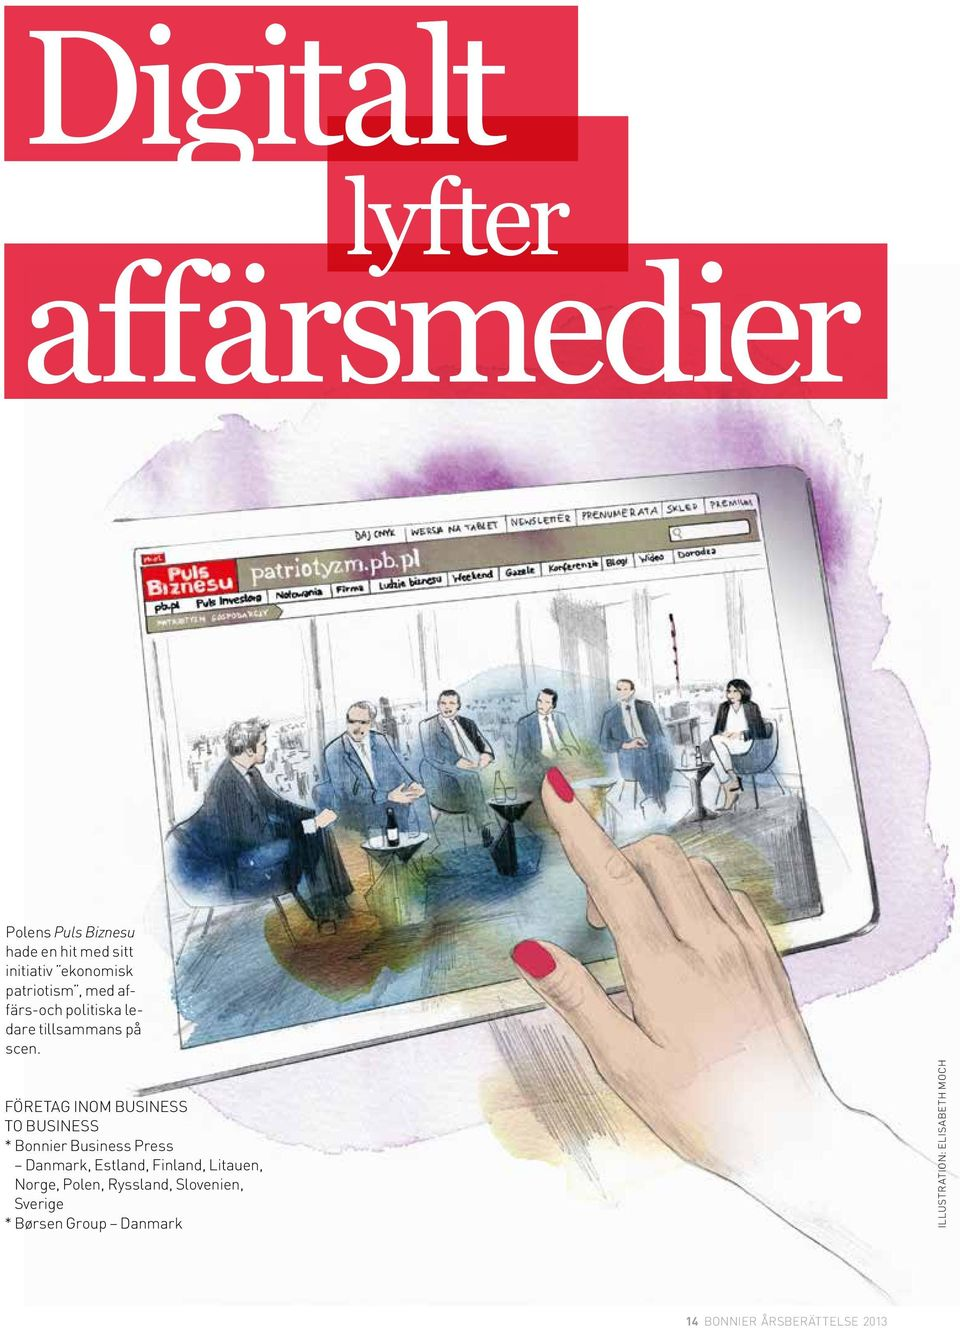 FÖRETAG INOM BUSINESS TO BUSINESS Bonnier Business Press Danmark, Estland, Finland, Litauen,